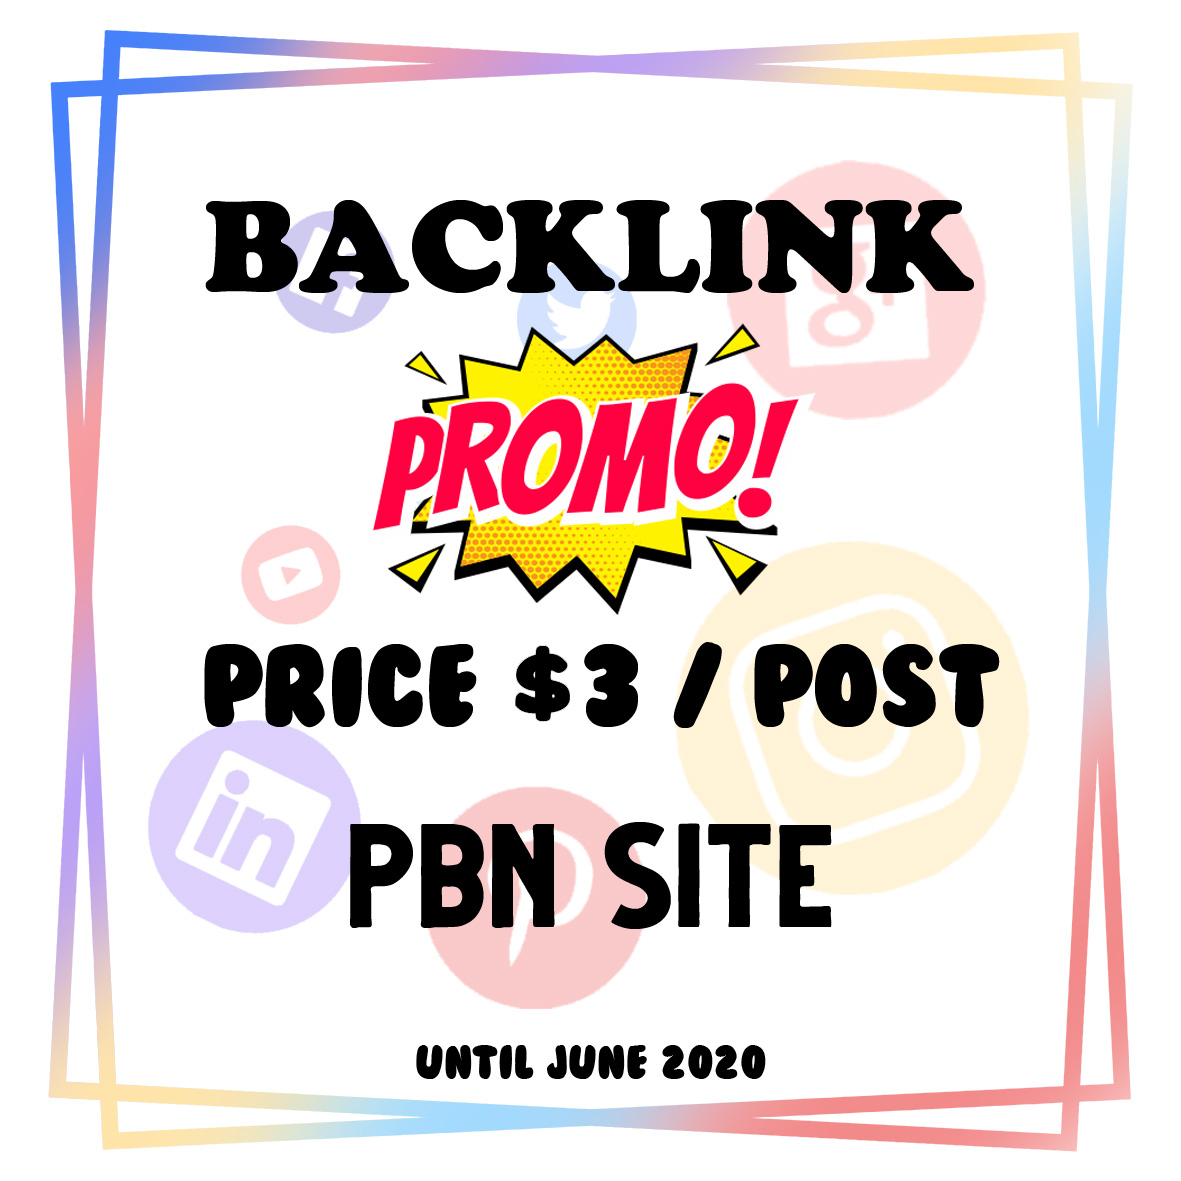 I will provide 1200 PBNs for Backlink Article Post